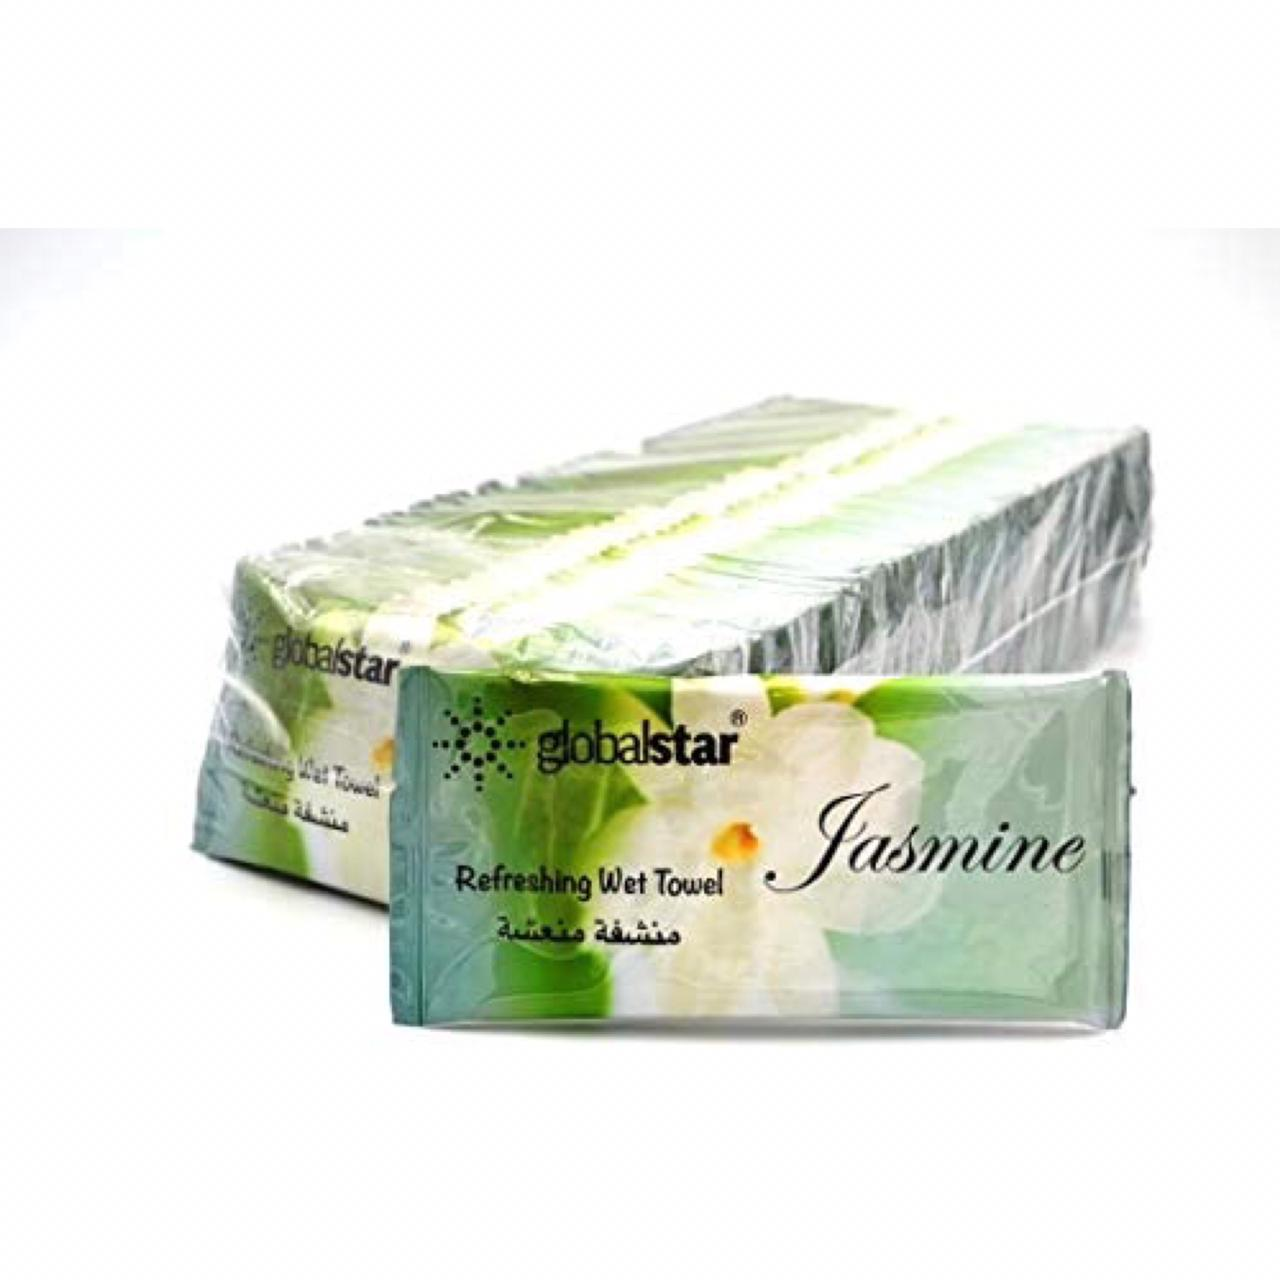 Globalstar Refreshing Wet Towel Jasmine 200pcs - RT03